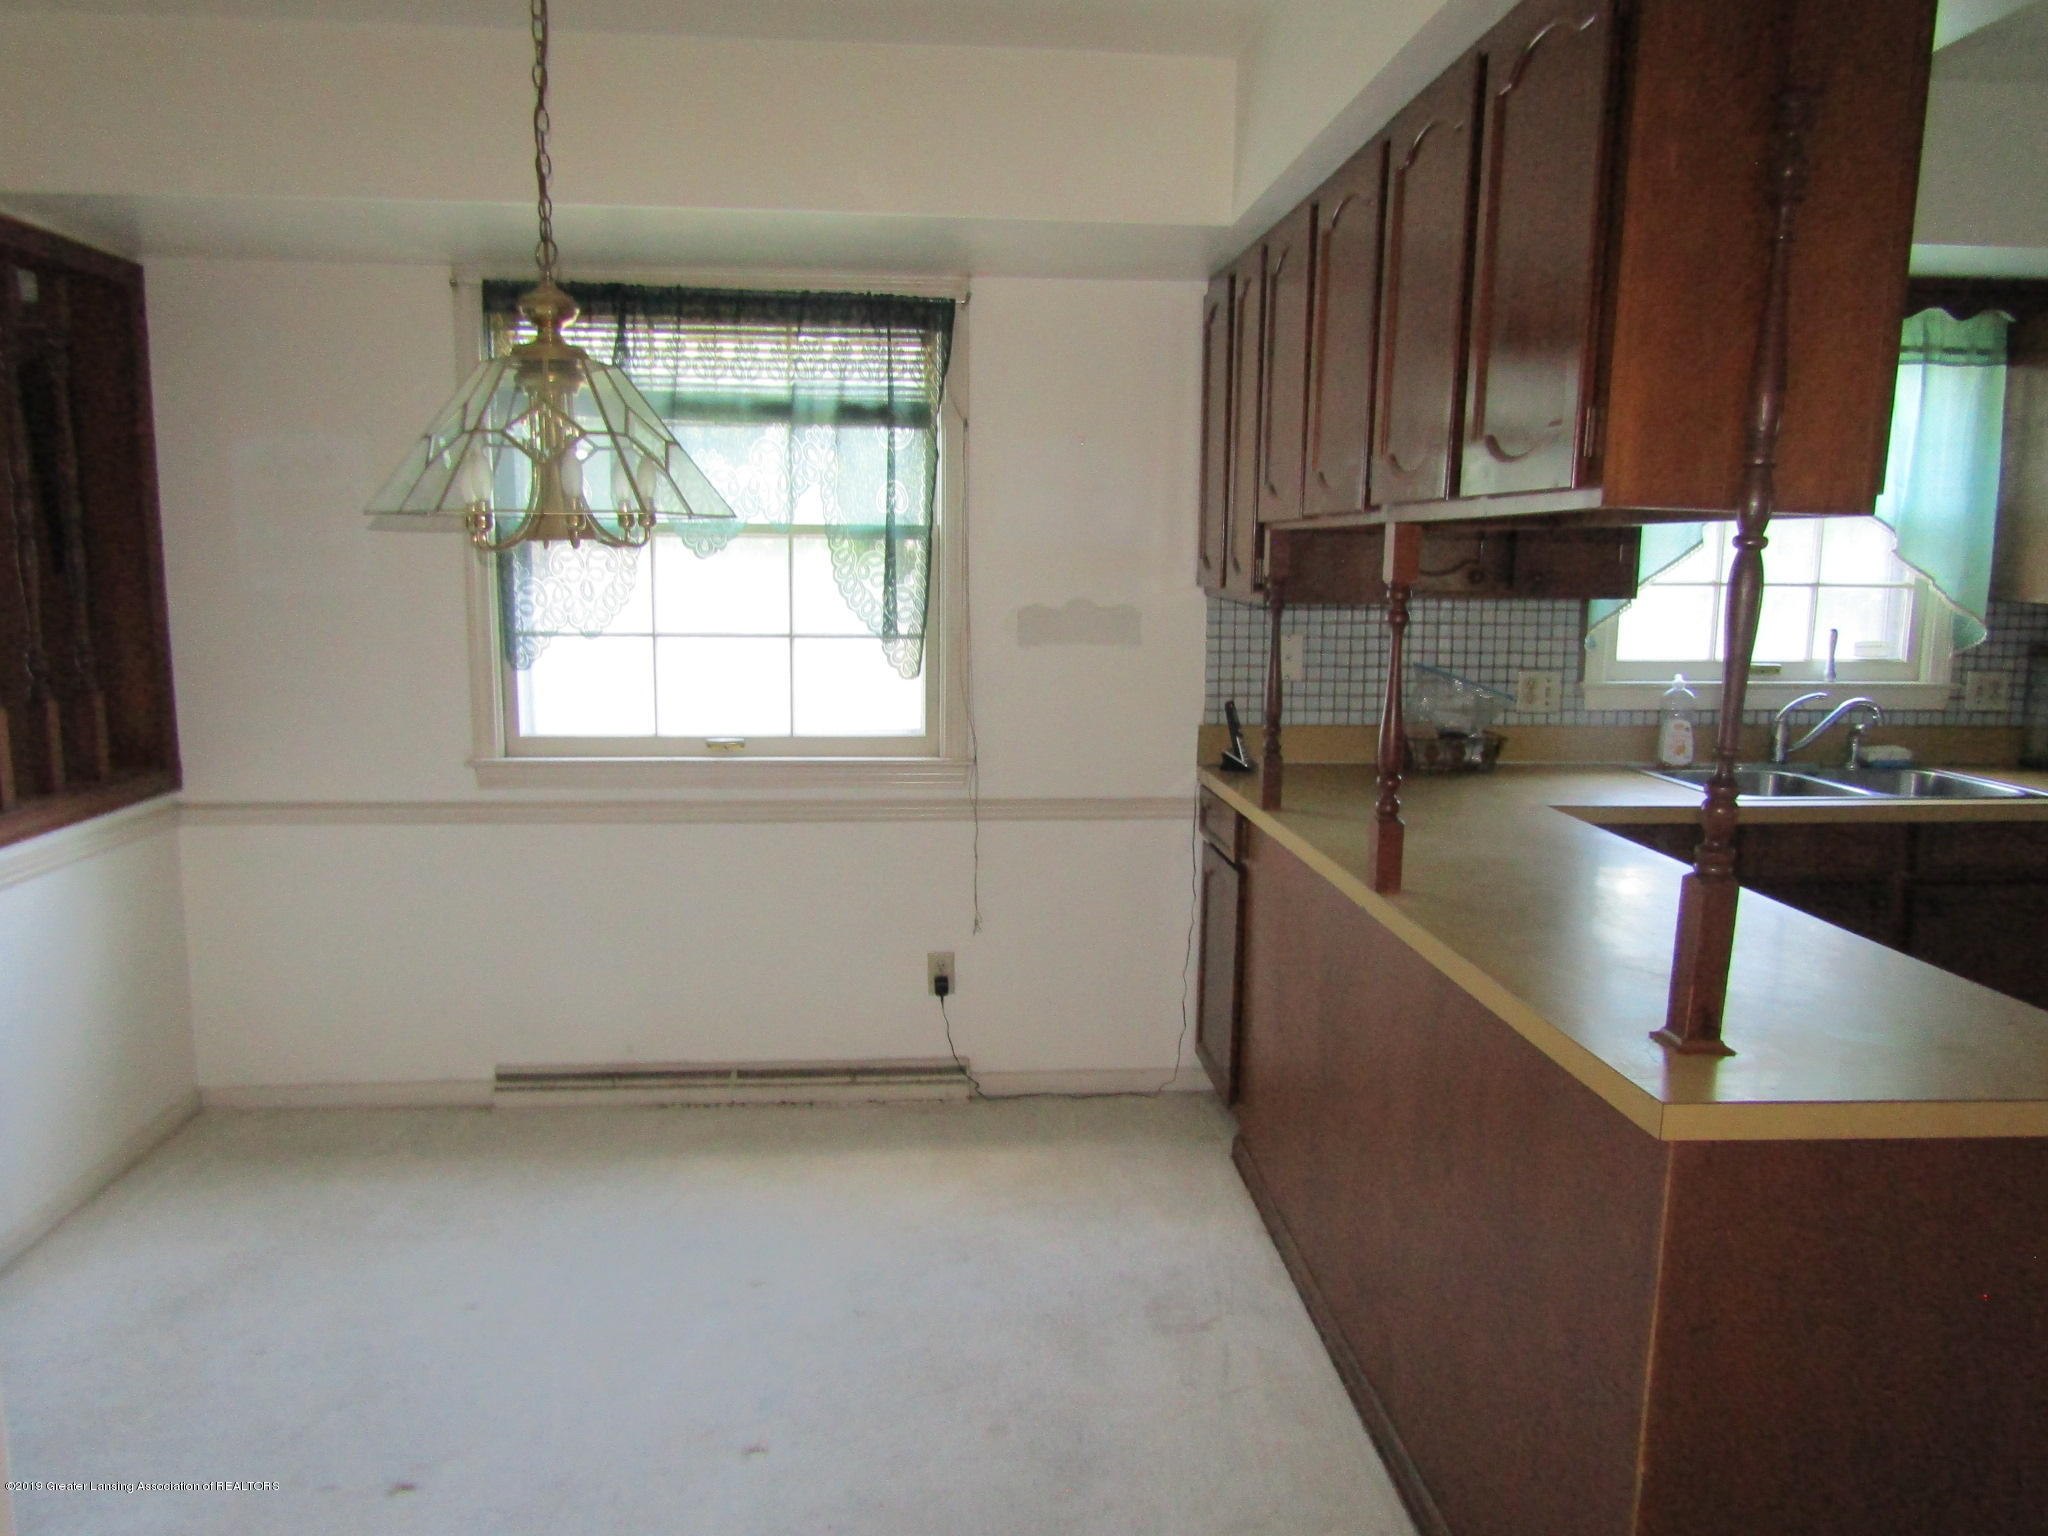 2621 S Waverly Rd - Dining Area - 12